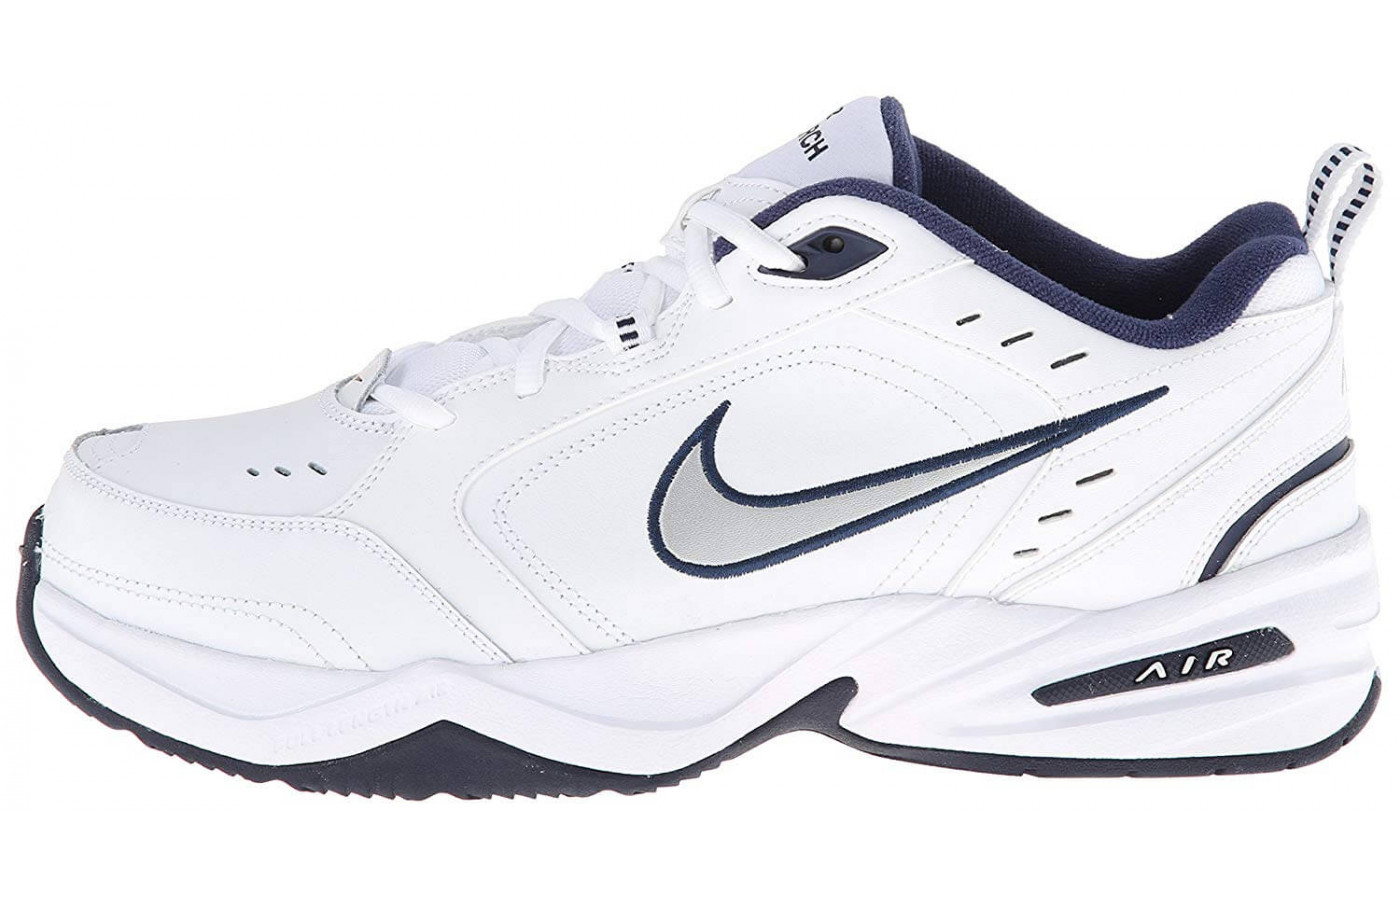 quality design 705a9 b6e89 ... Nike Air Monarch IV Left. 9.3. 9.3 score